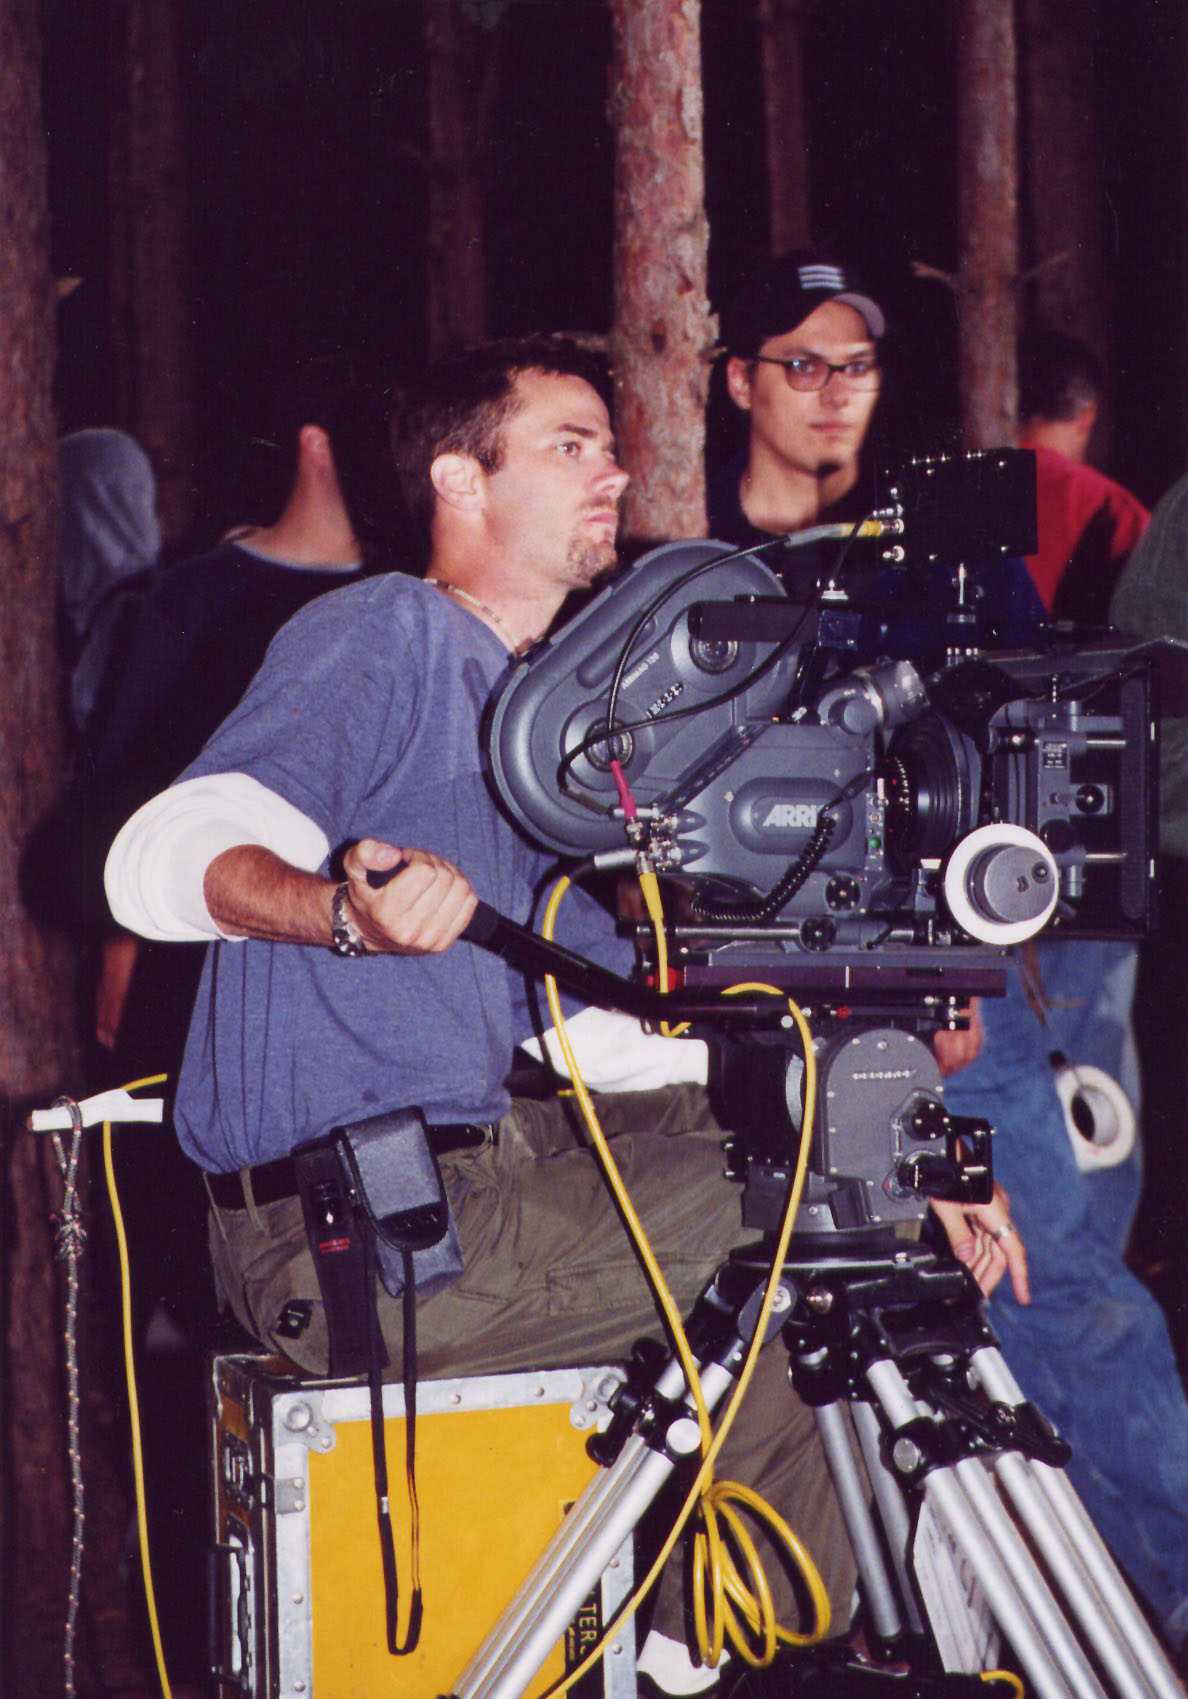 Filming and Directing Rob Bell in Nooma 001 - RAIN - Michigan 2001